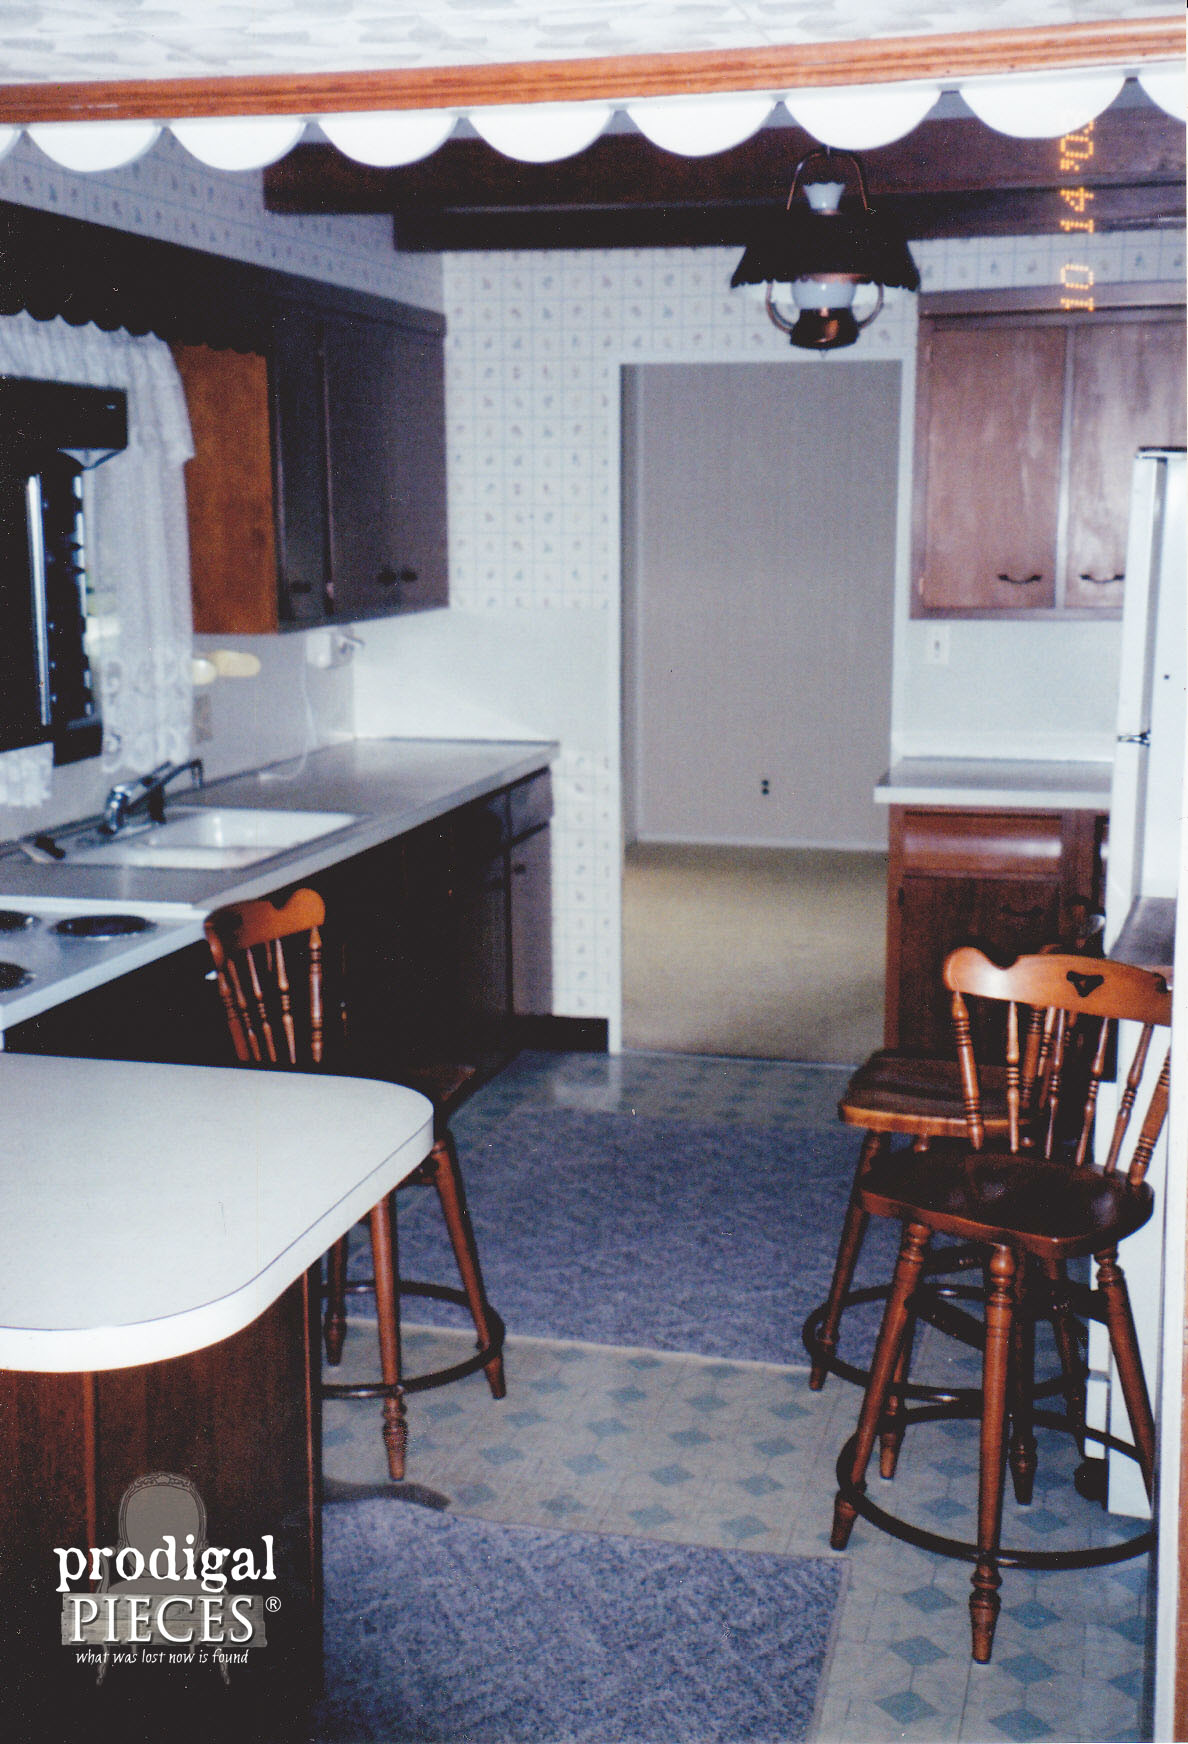 Outdated Kitchen Remodel with New Flooring by Prodigal Pieces | www.prodigalpieces.com